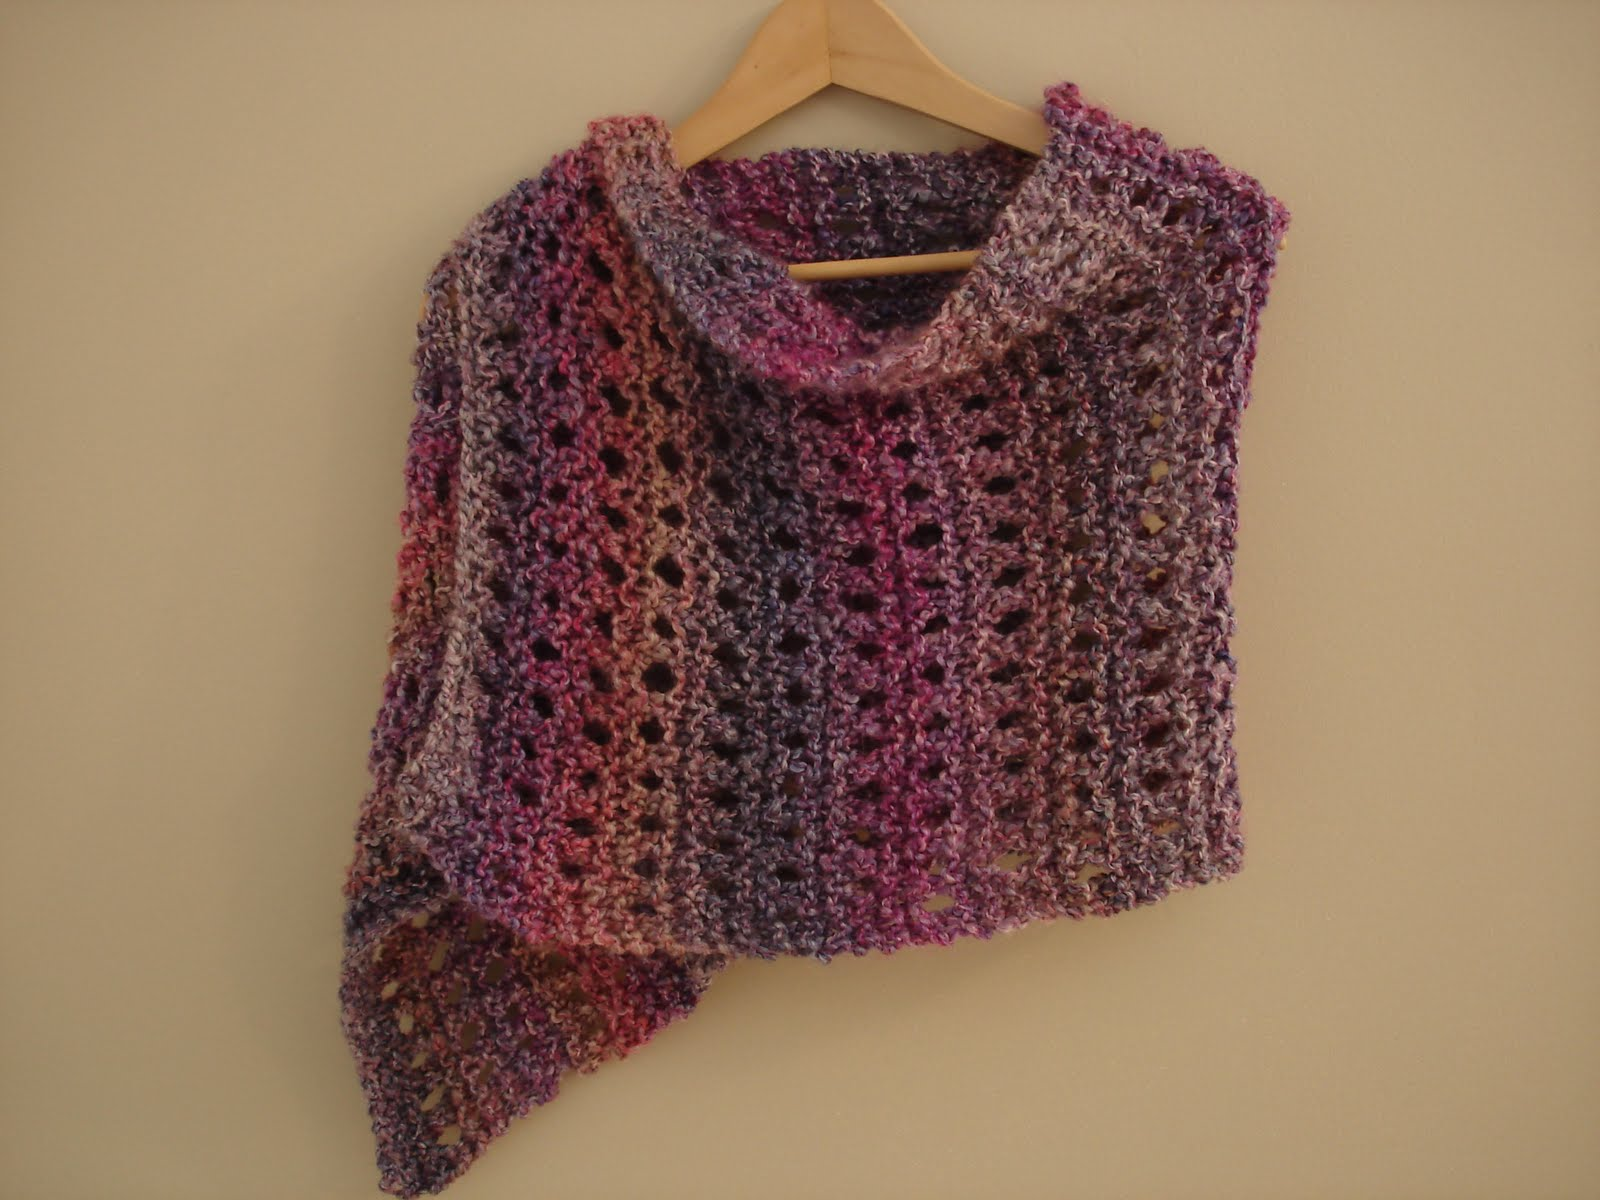 Knitting Crochet Patterns : Fiber Flux: Free Knitting Pattern...A Peaceful Shawl!